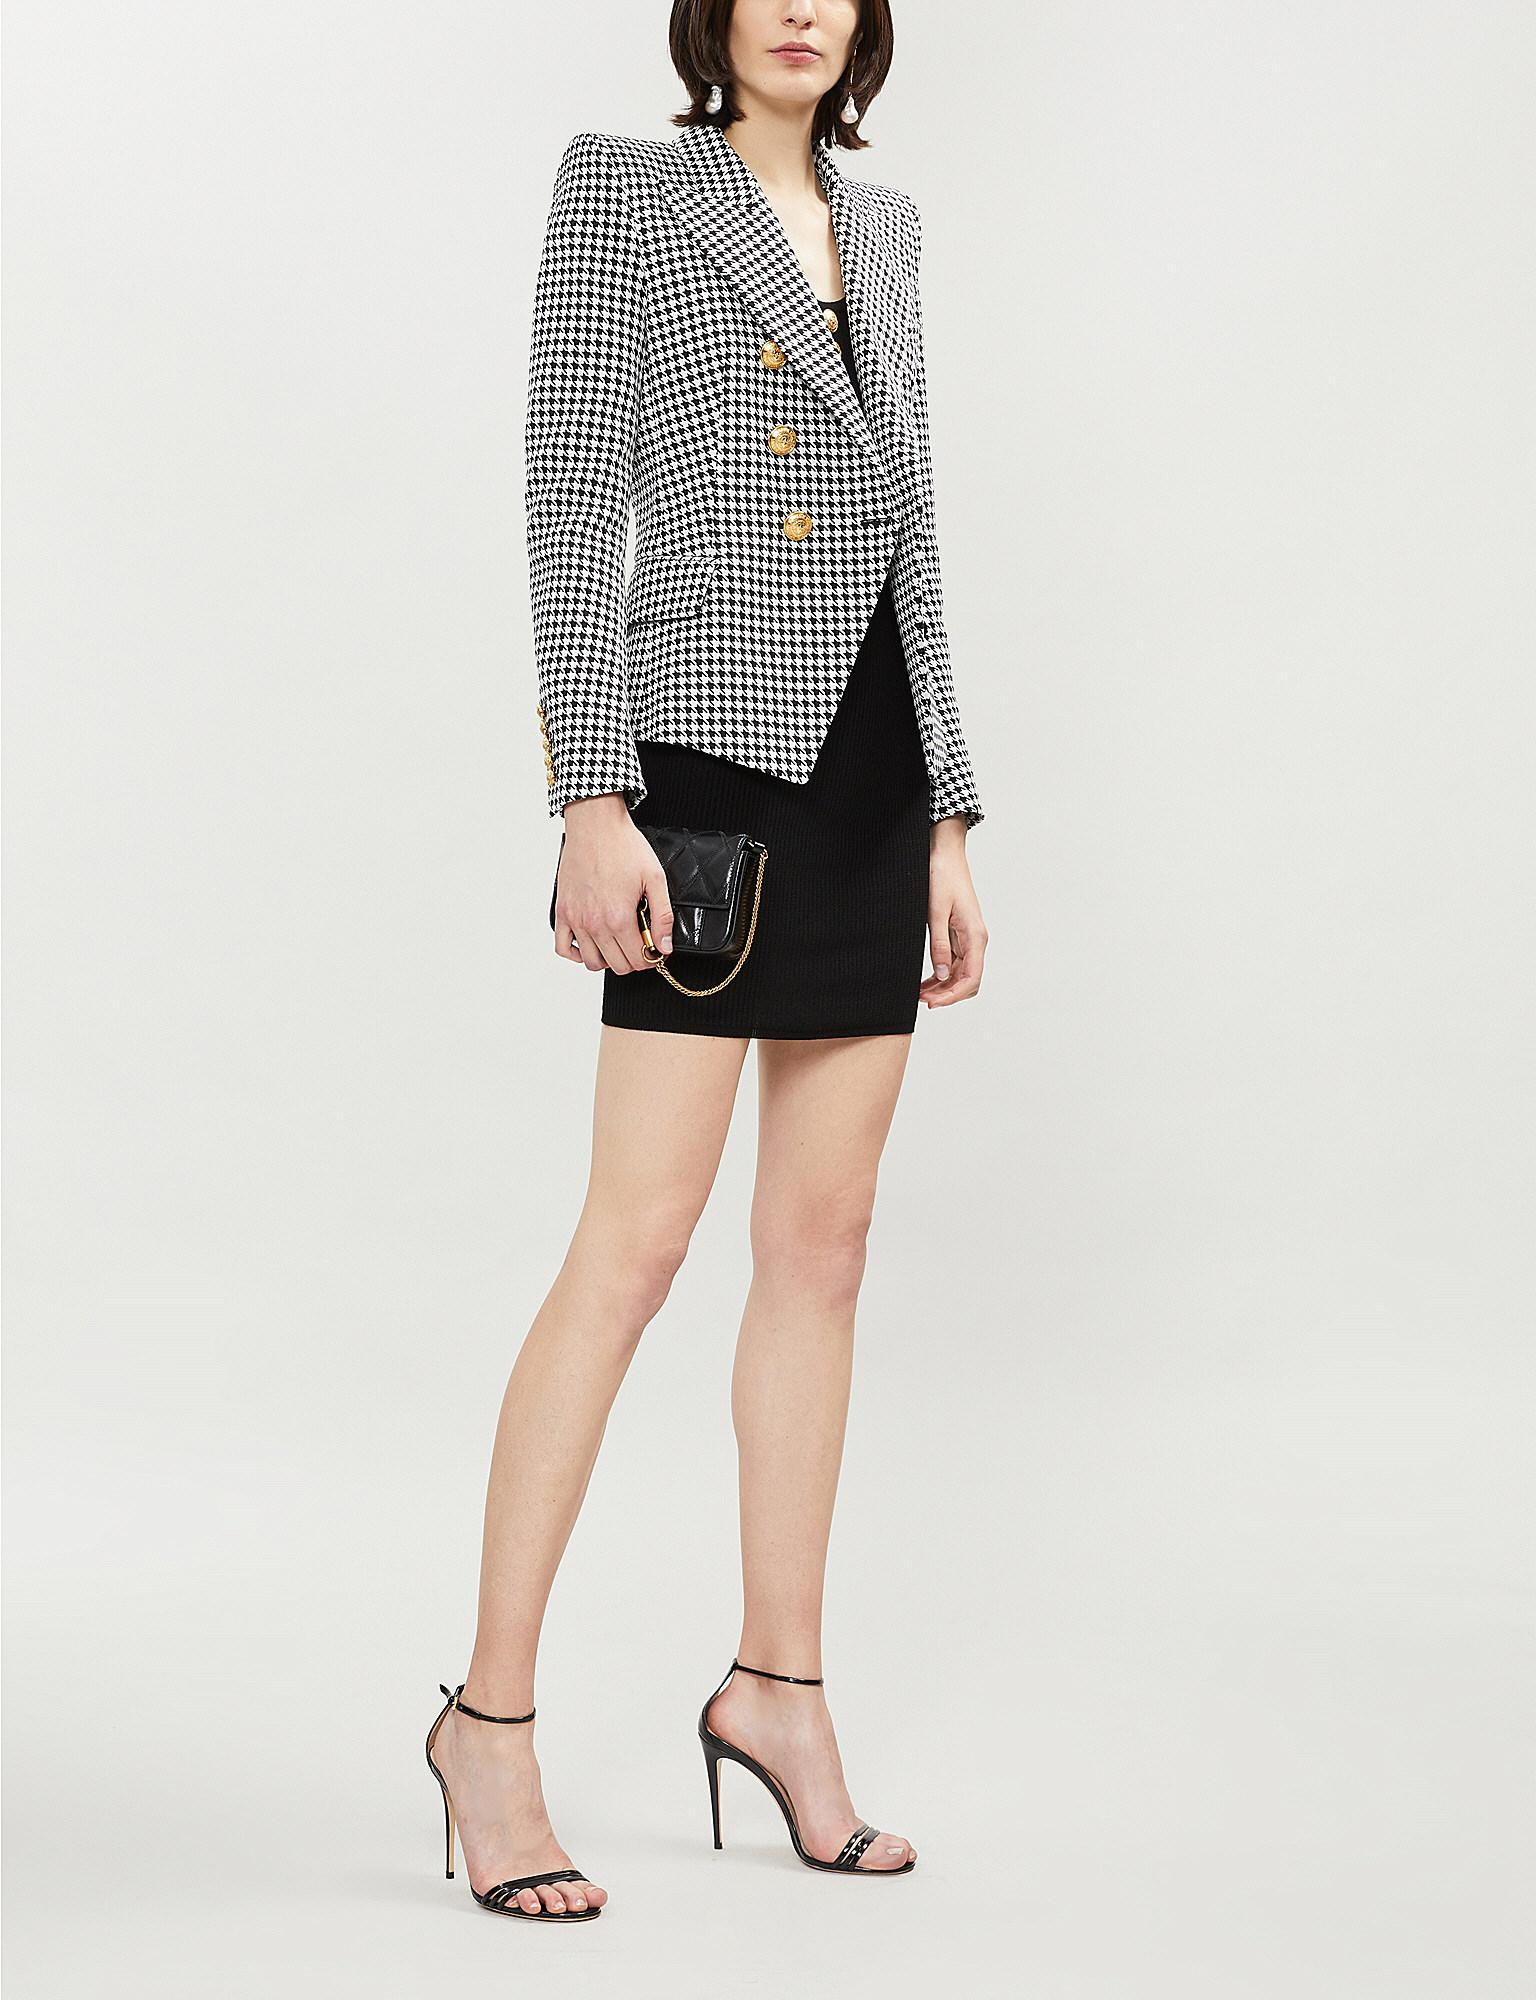 1eb09a54 Lyst - Balmain Double-breasted Houndstooth Cotton-blend Jacket in Black